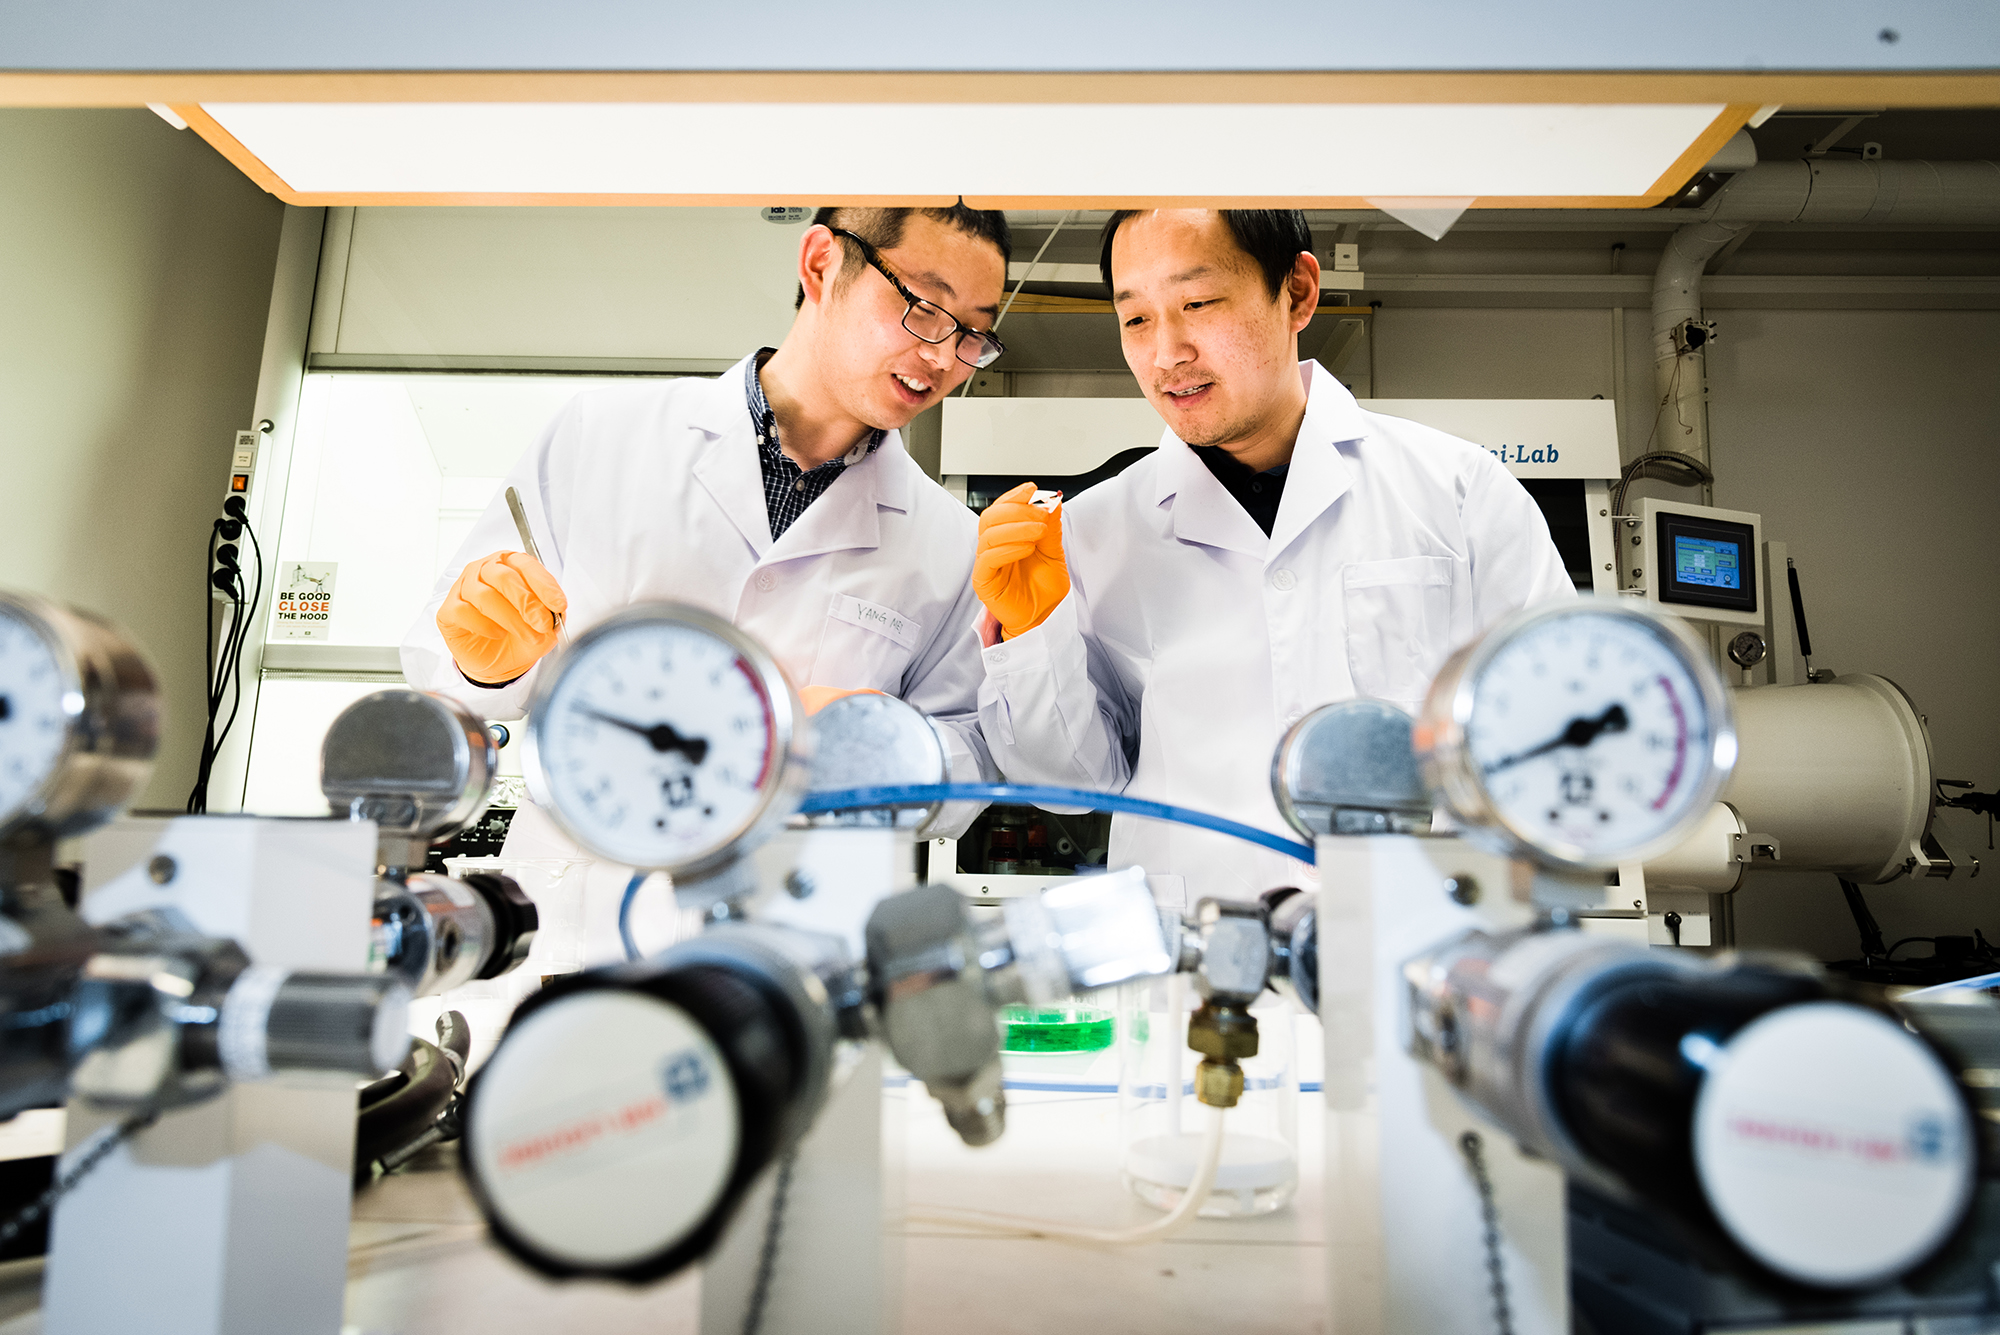 Weihua Ning (Left) and Feng Gao (right) are discussing their lead-free devices.